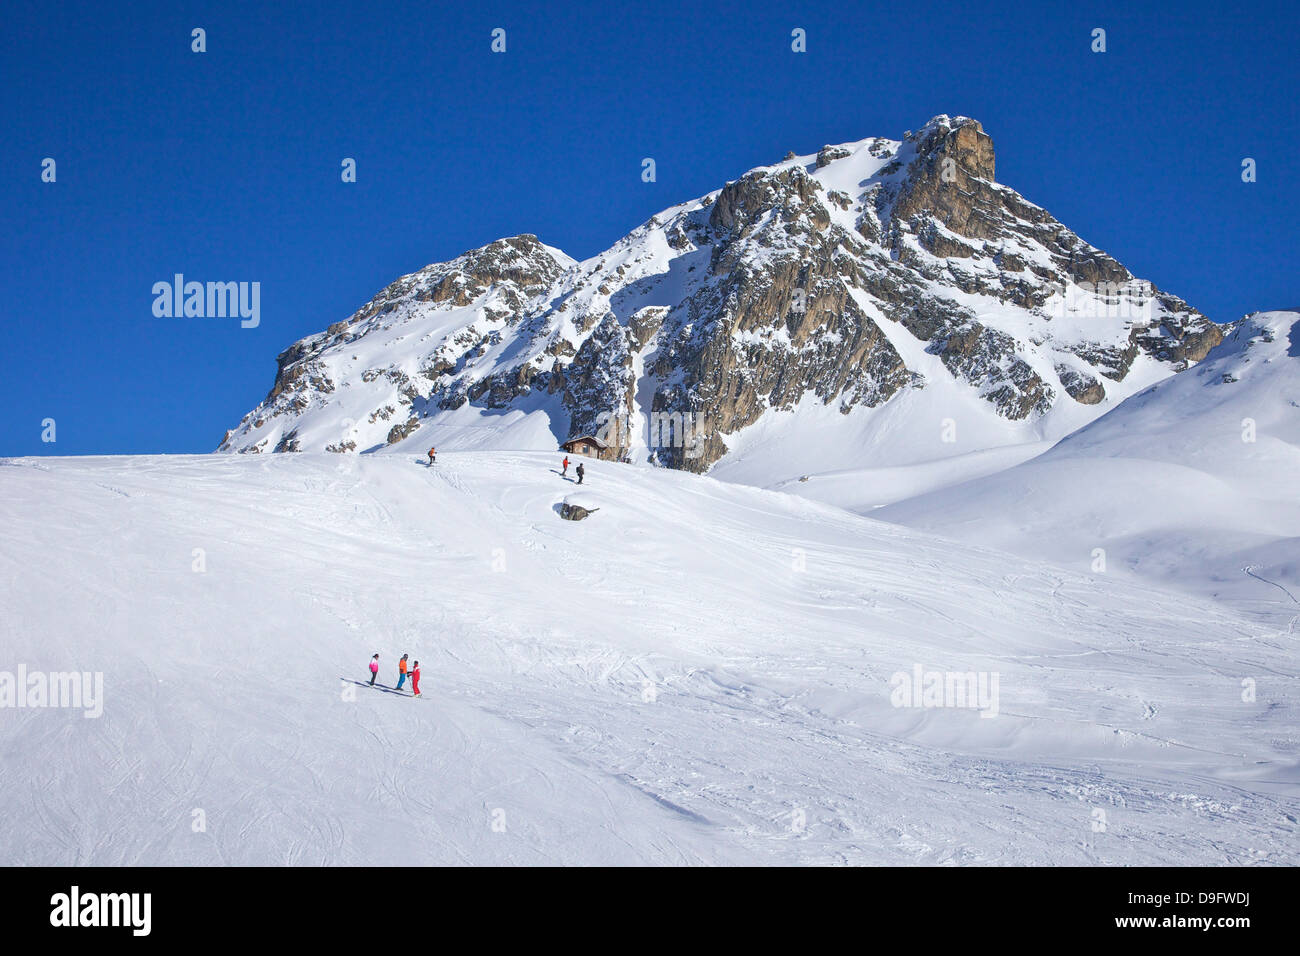 Le Serac blue piste, winter sun, Champagny, La Plagne, French Alps, France - Stock Image